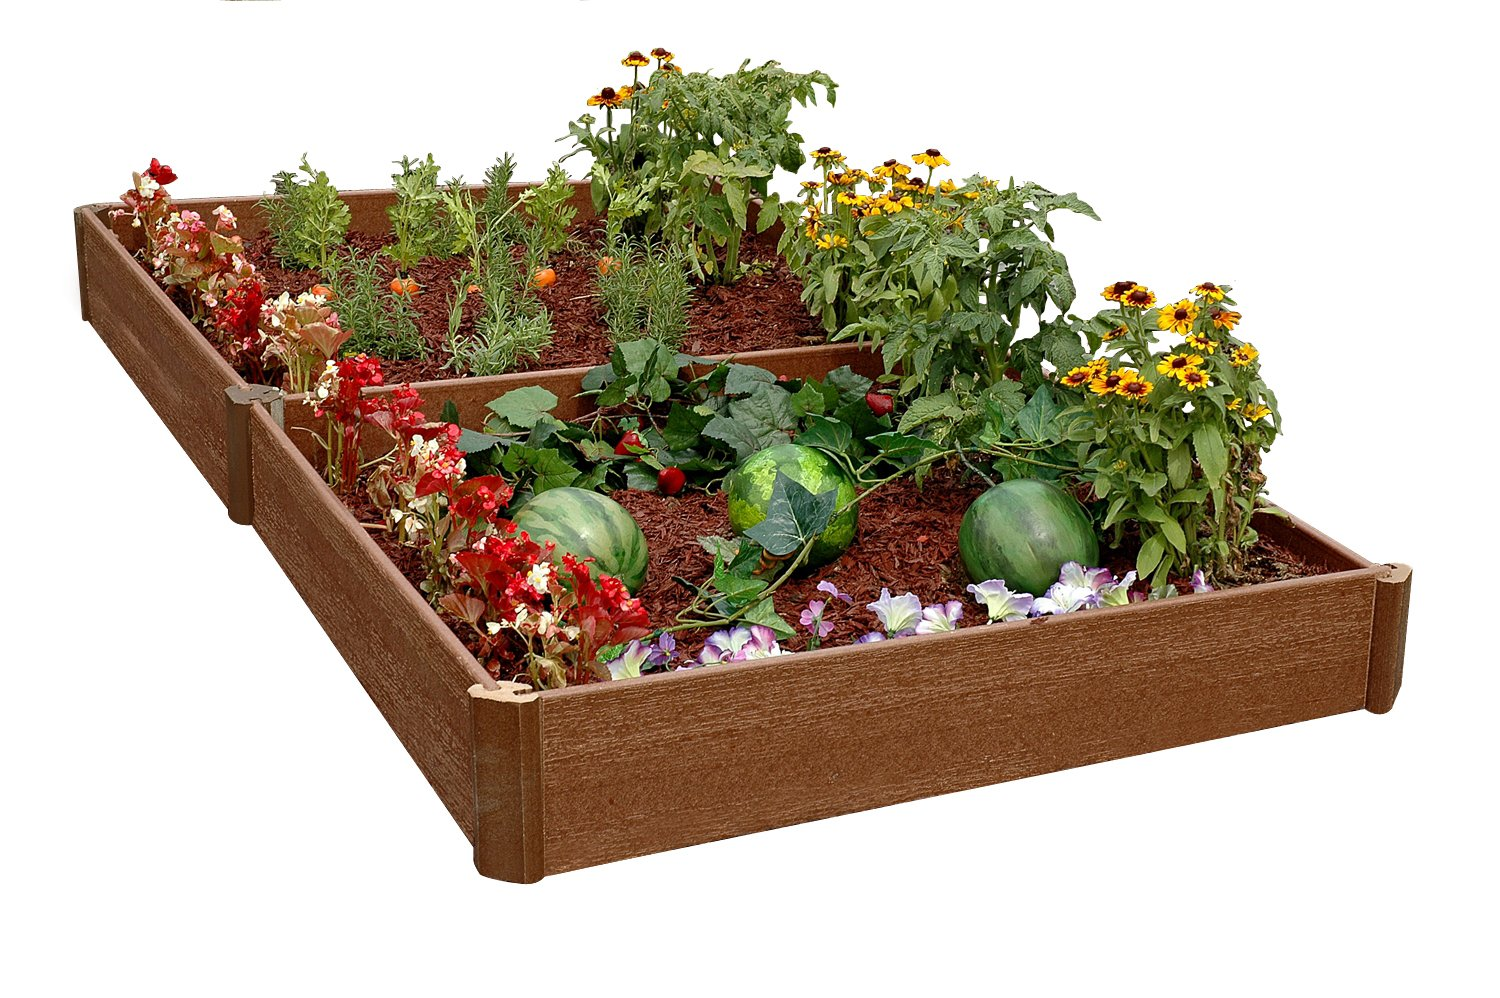 Amazoncom Greenland Gardener 8 Inch Raised Bed Double Garden